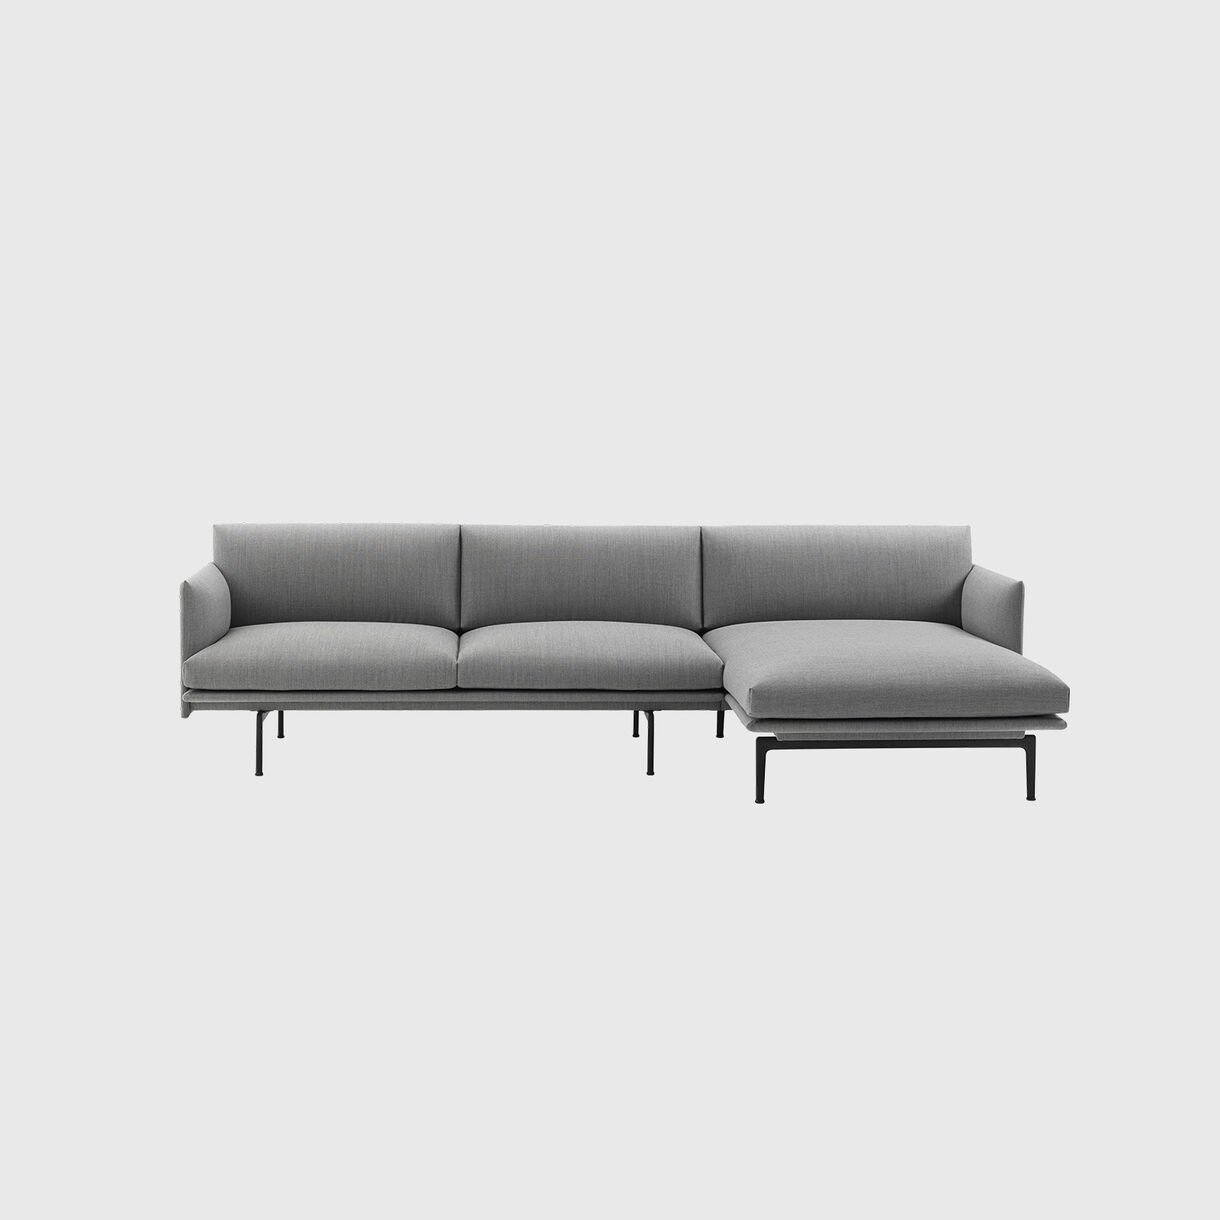 Outline Chaise Sofa, Right, Vancouver 14